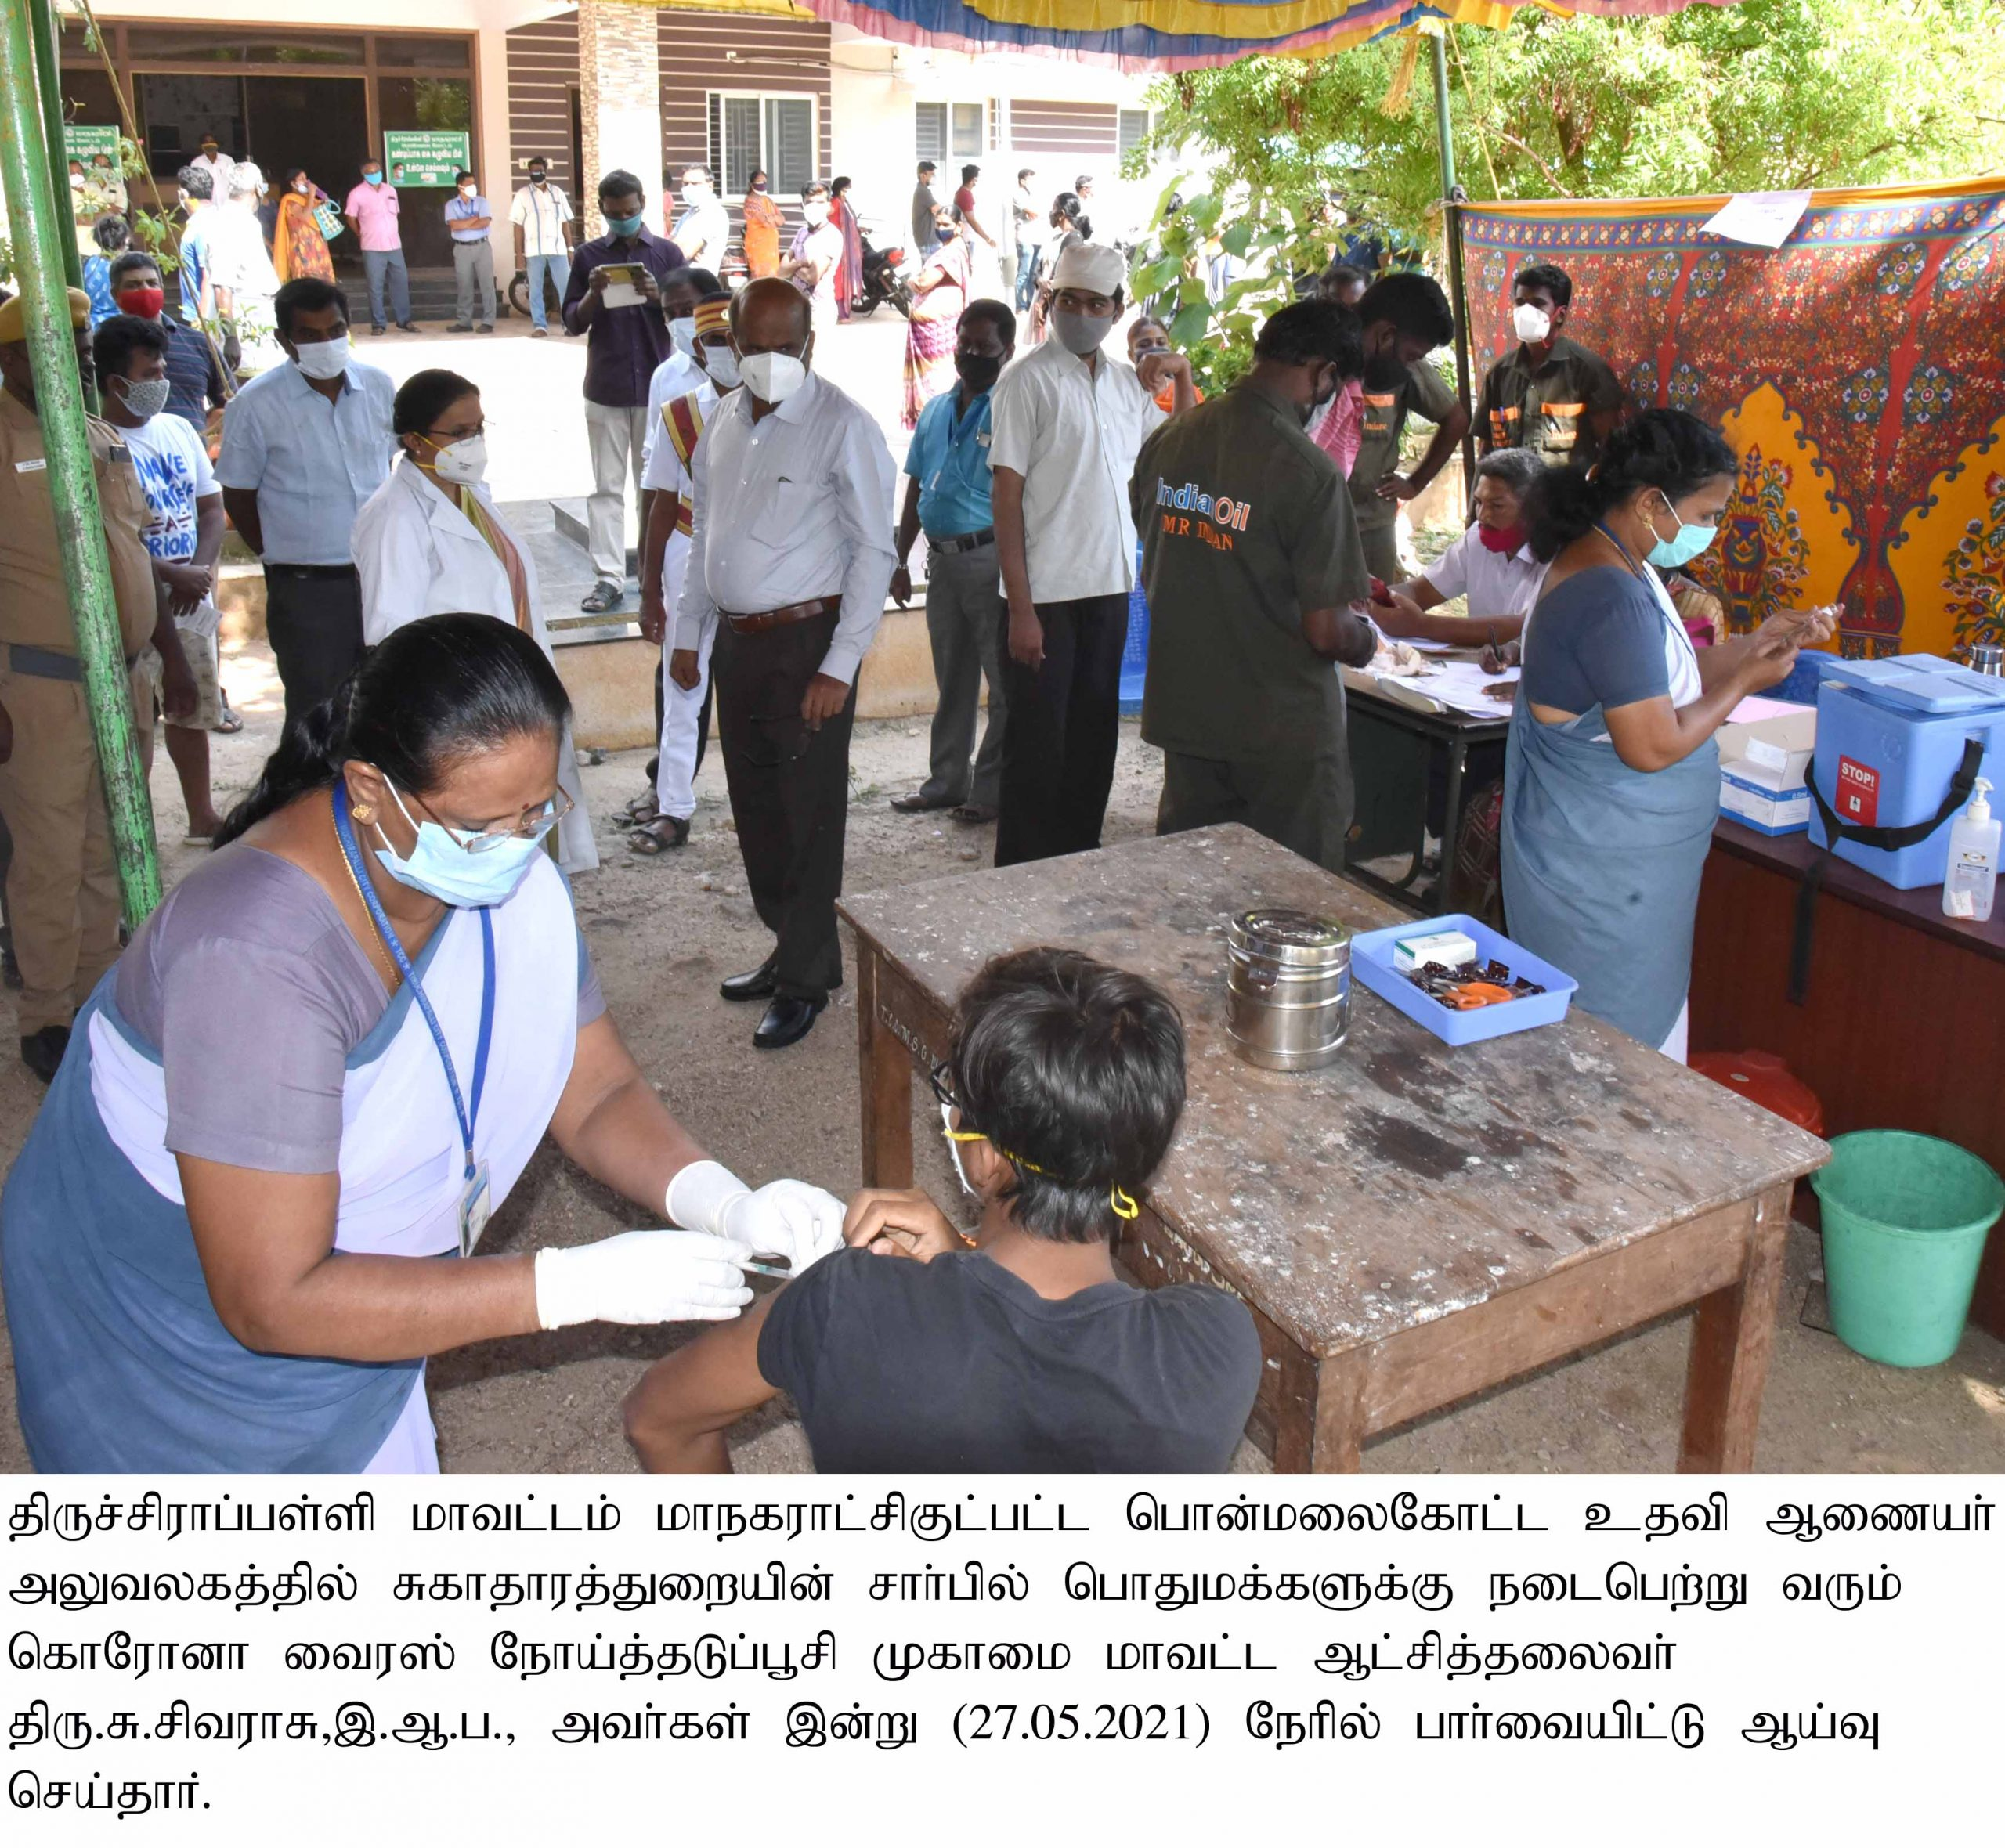 District Collector Inspected the Covid Vaccination camp on 27.05.2021